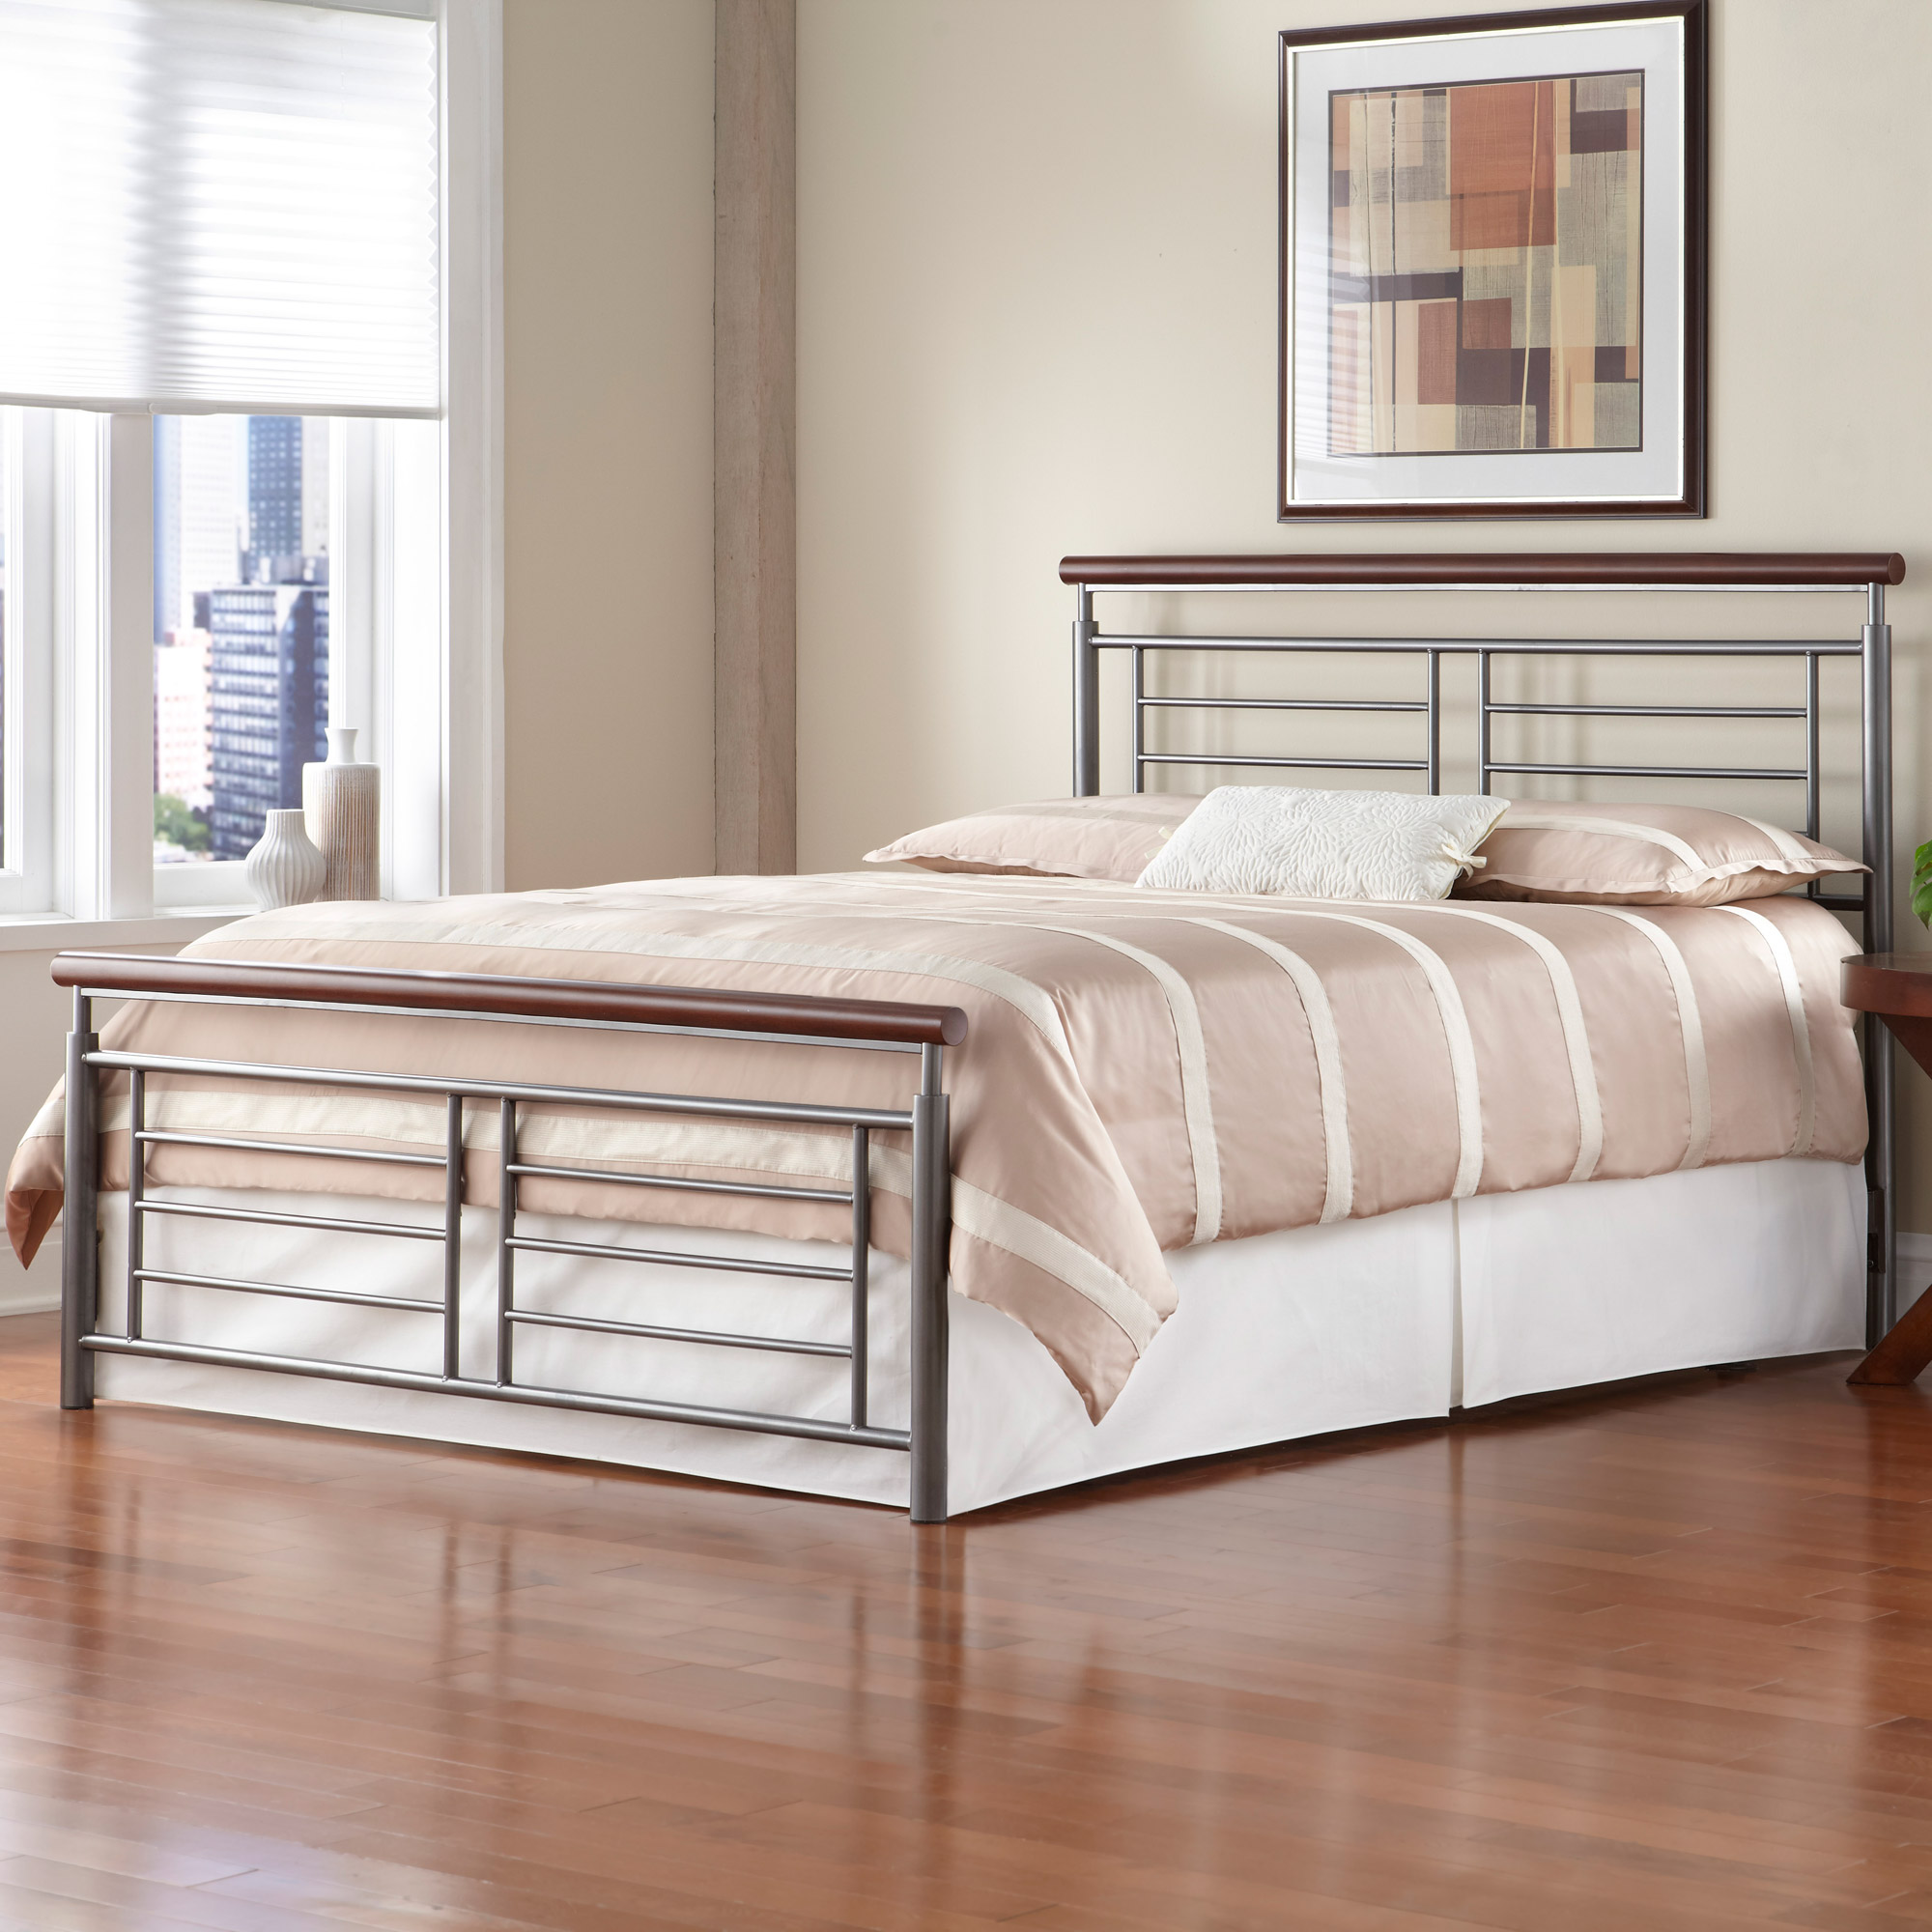 Fontane iron bed silver cherry metal contemporary design for Iron bedroom furniture